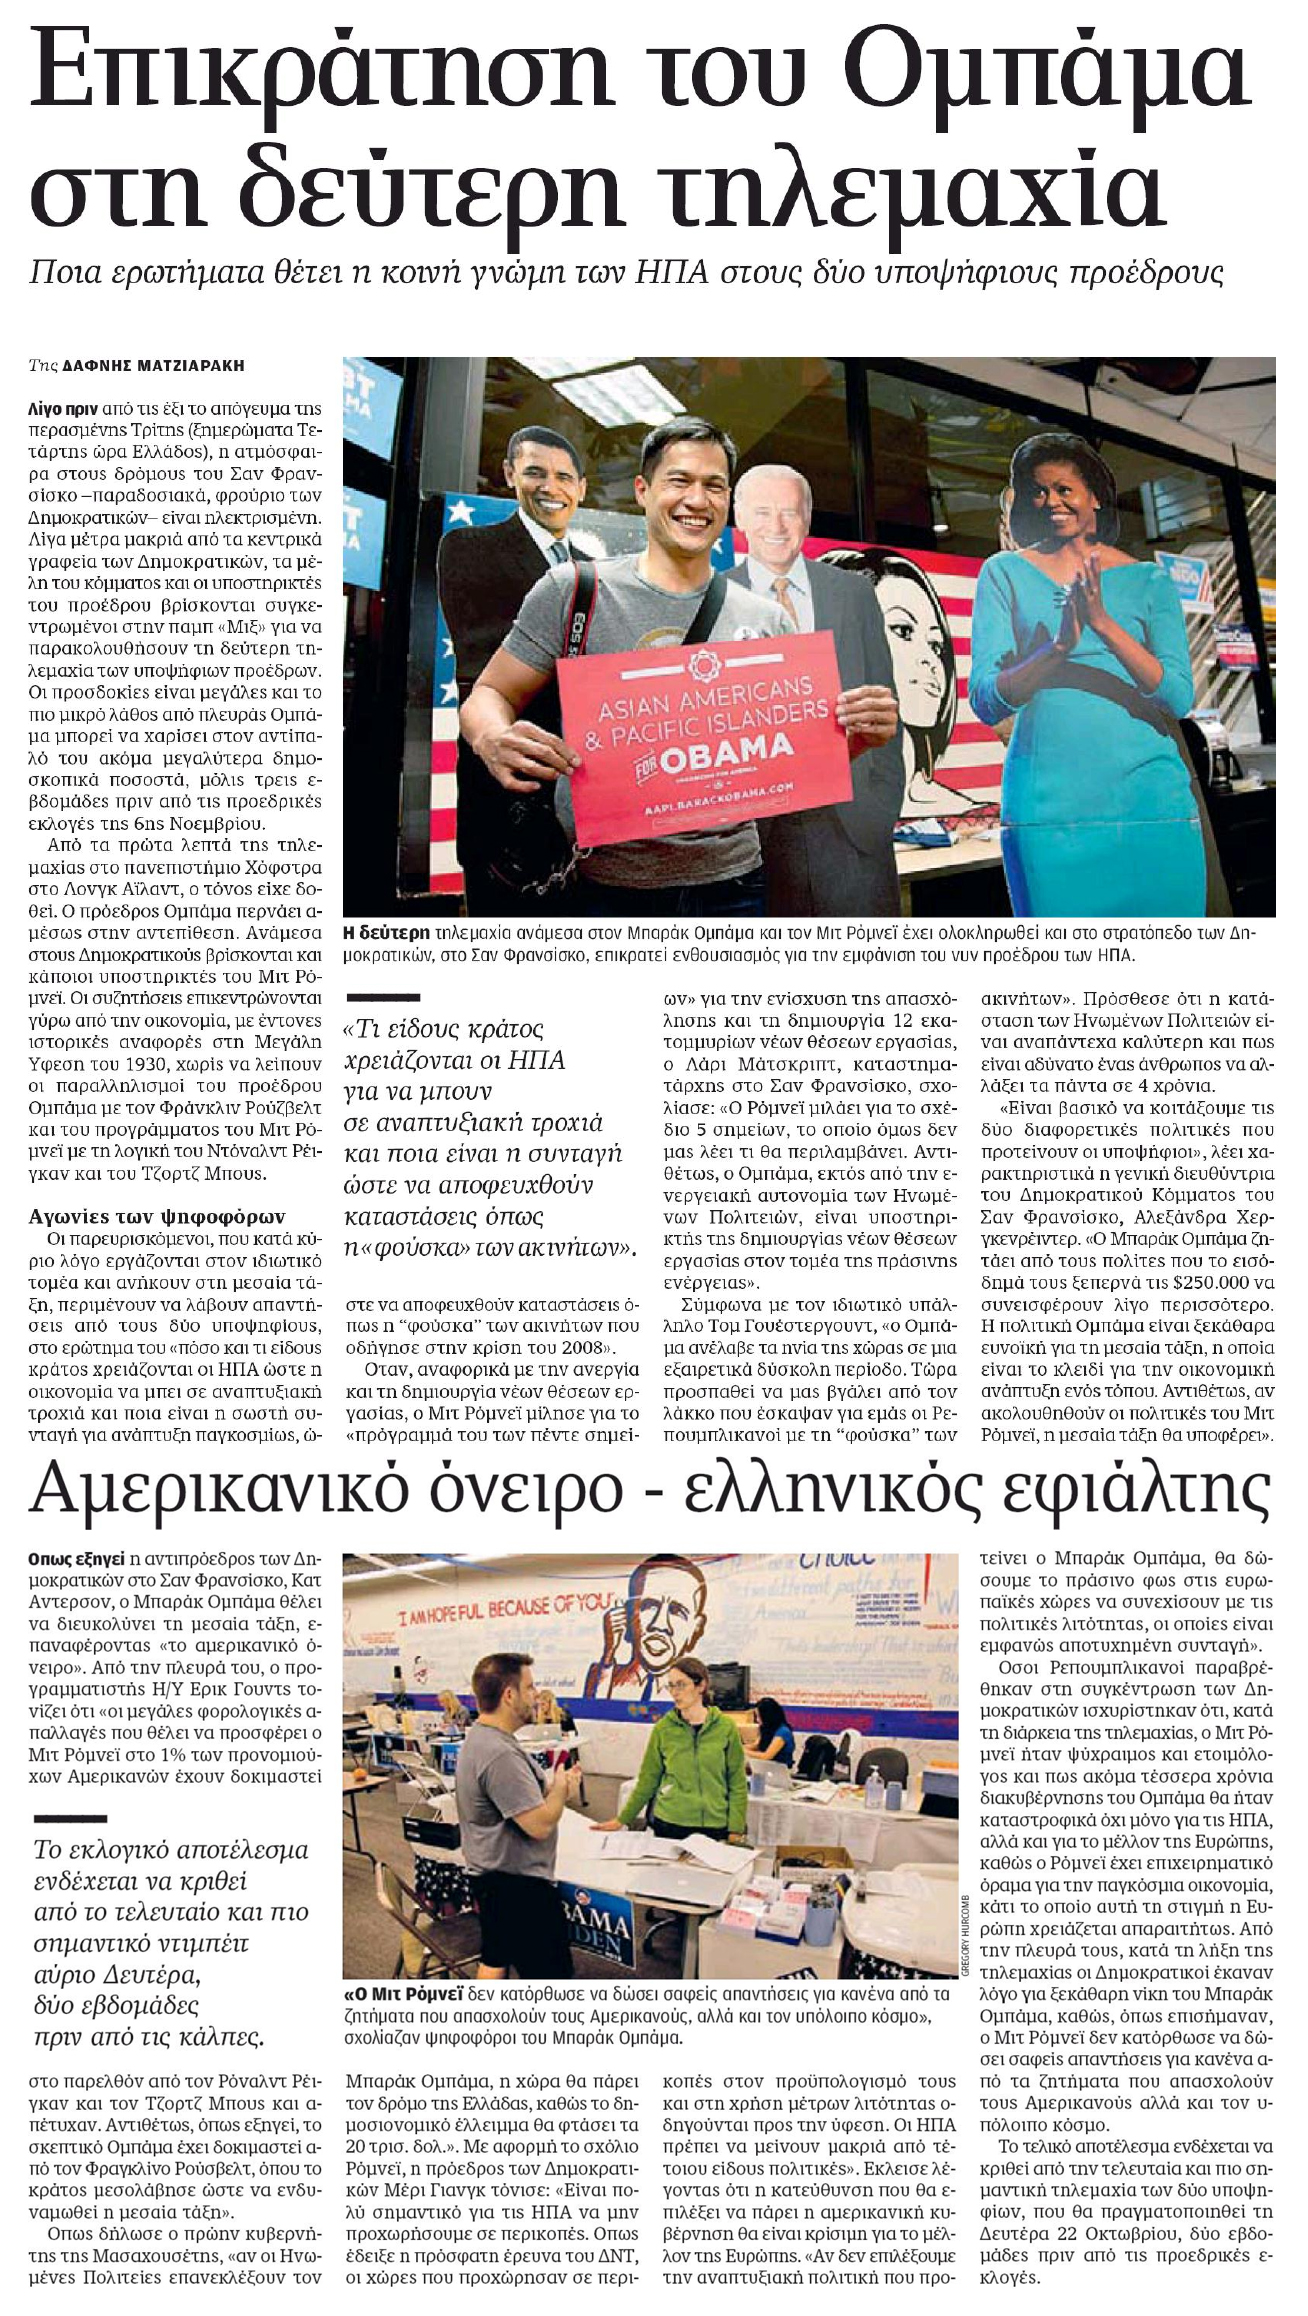 coverage of obama election